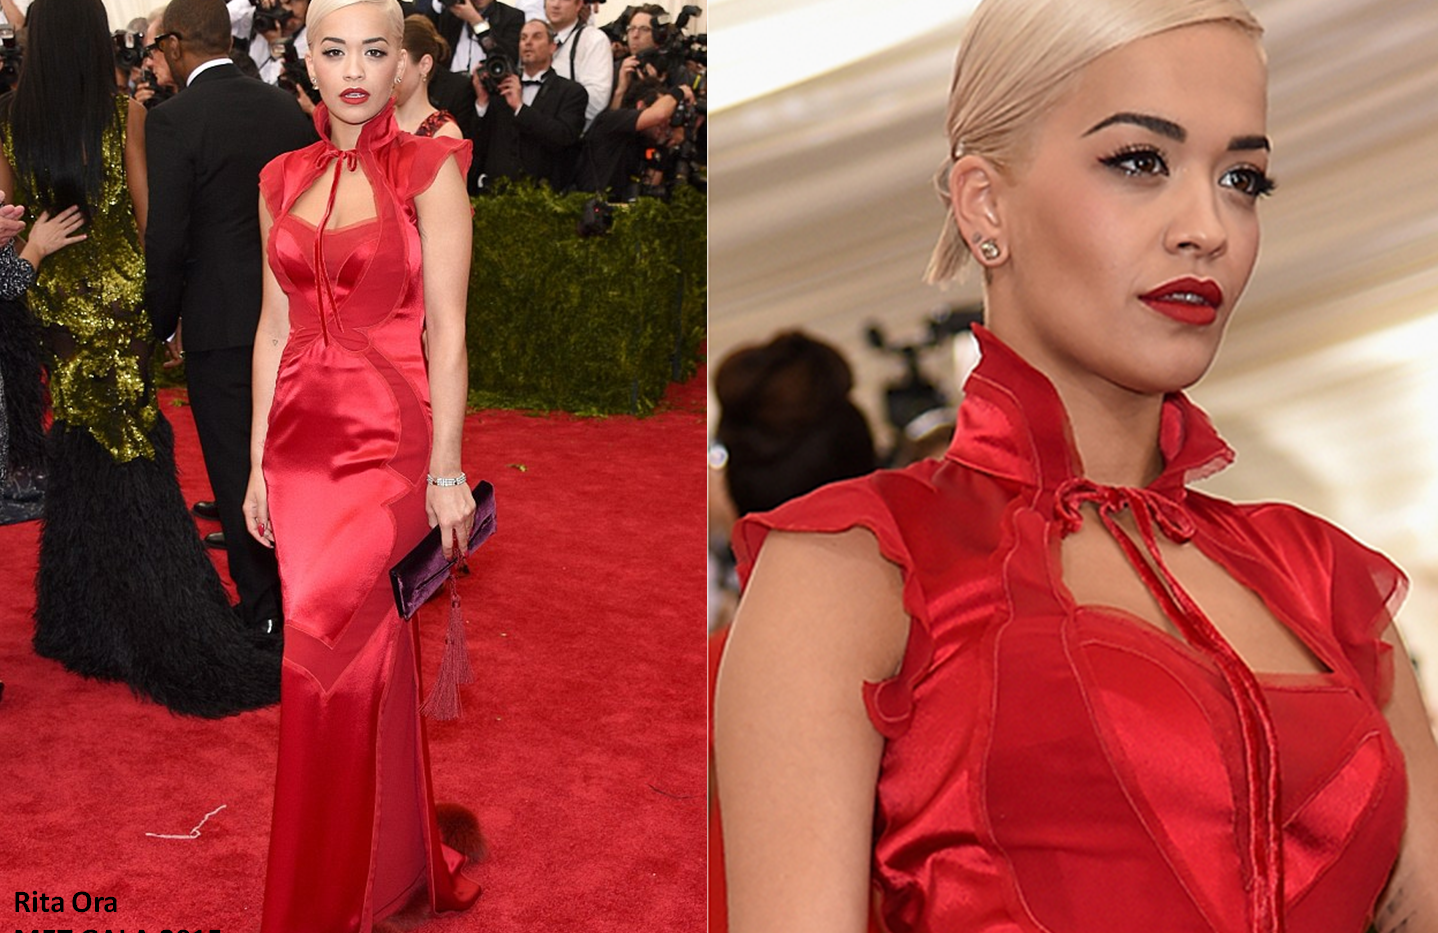 Rita Ora at the MET GALA 2015 wearing red gown - Project for TOM FORD - pattern making - dressmaking - fitting / tailoring - managing - garment technology consult